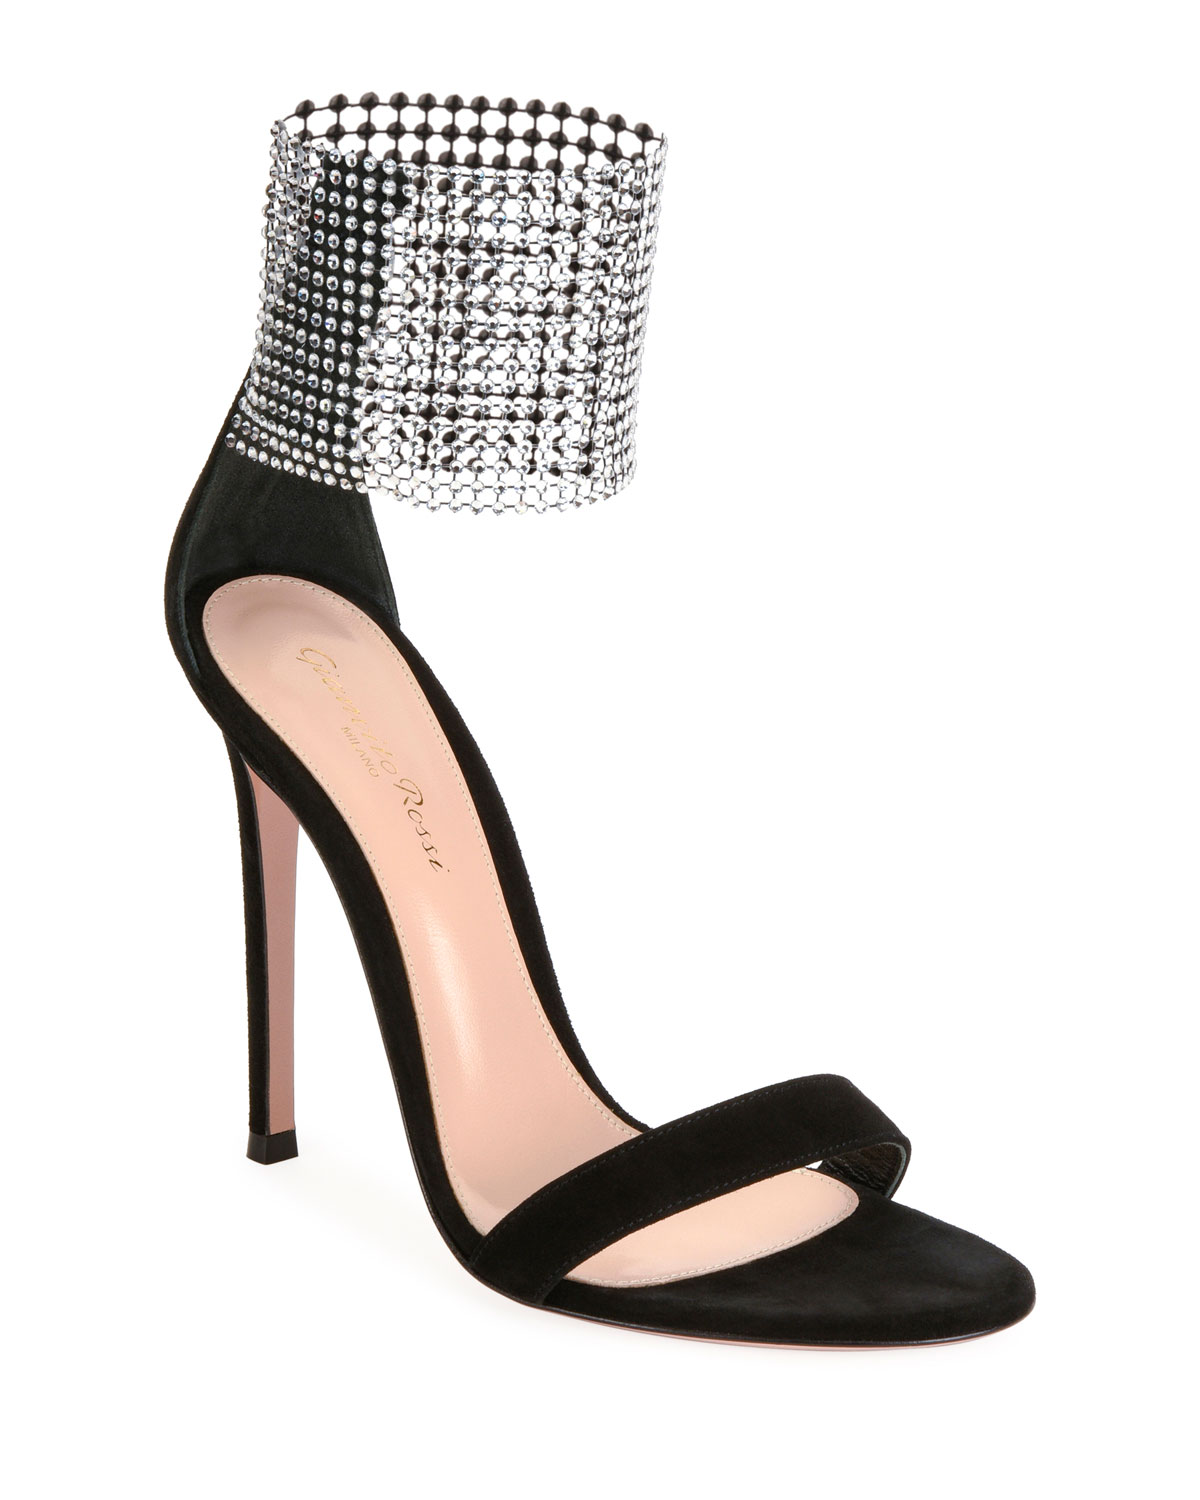 Gianvito Rossi High Sandals with Crystal Cuff